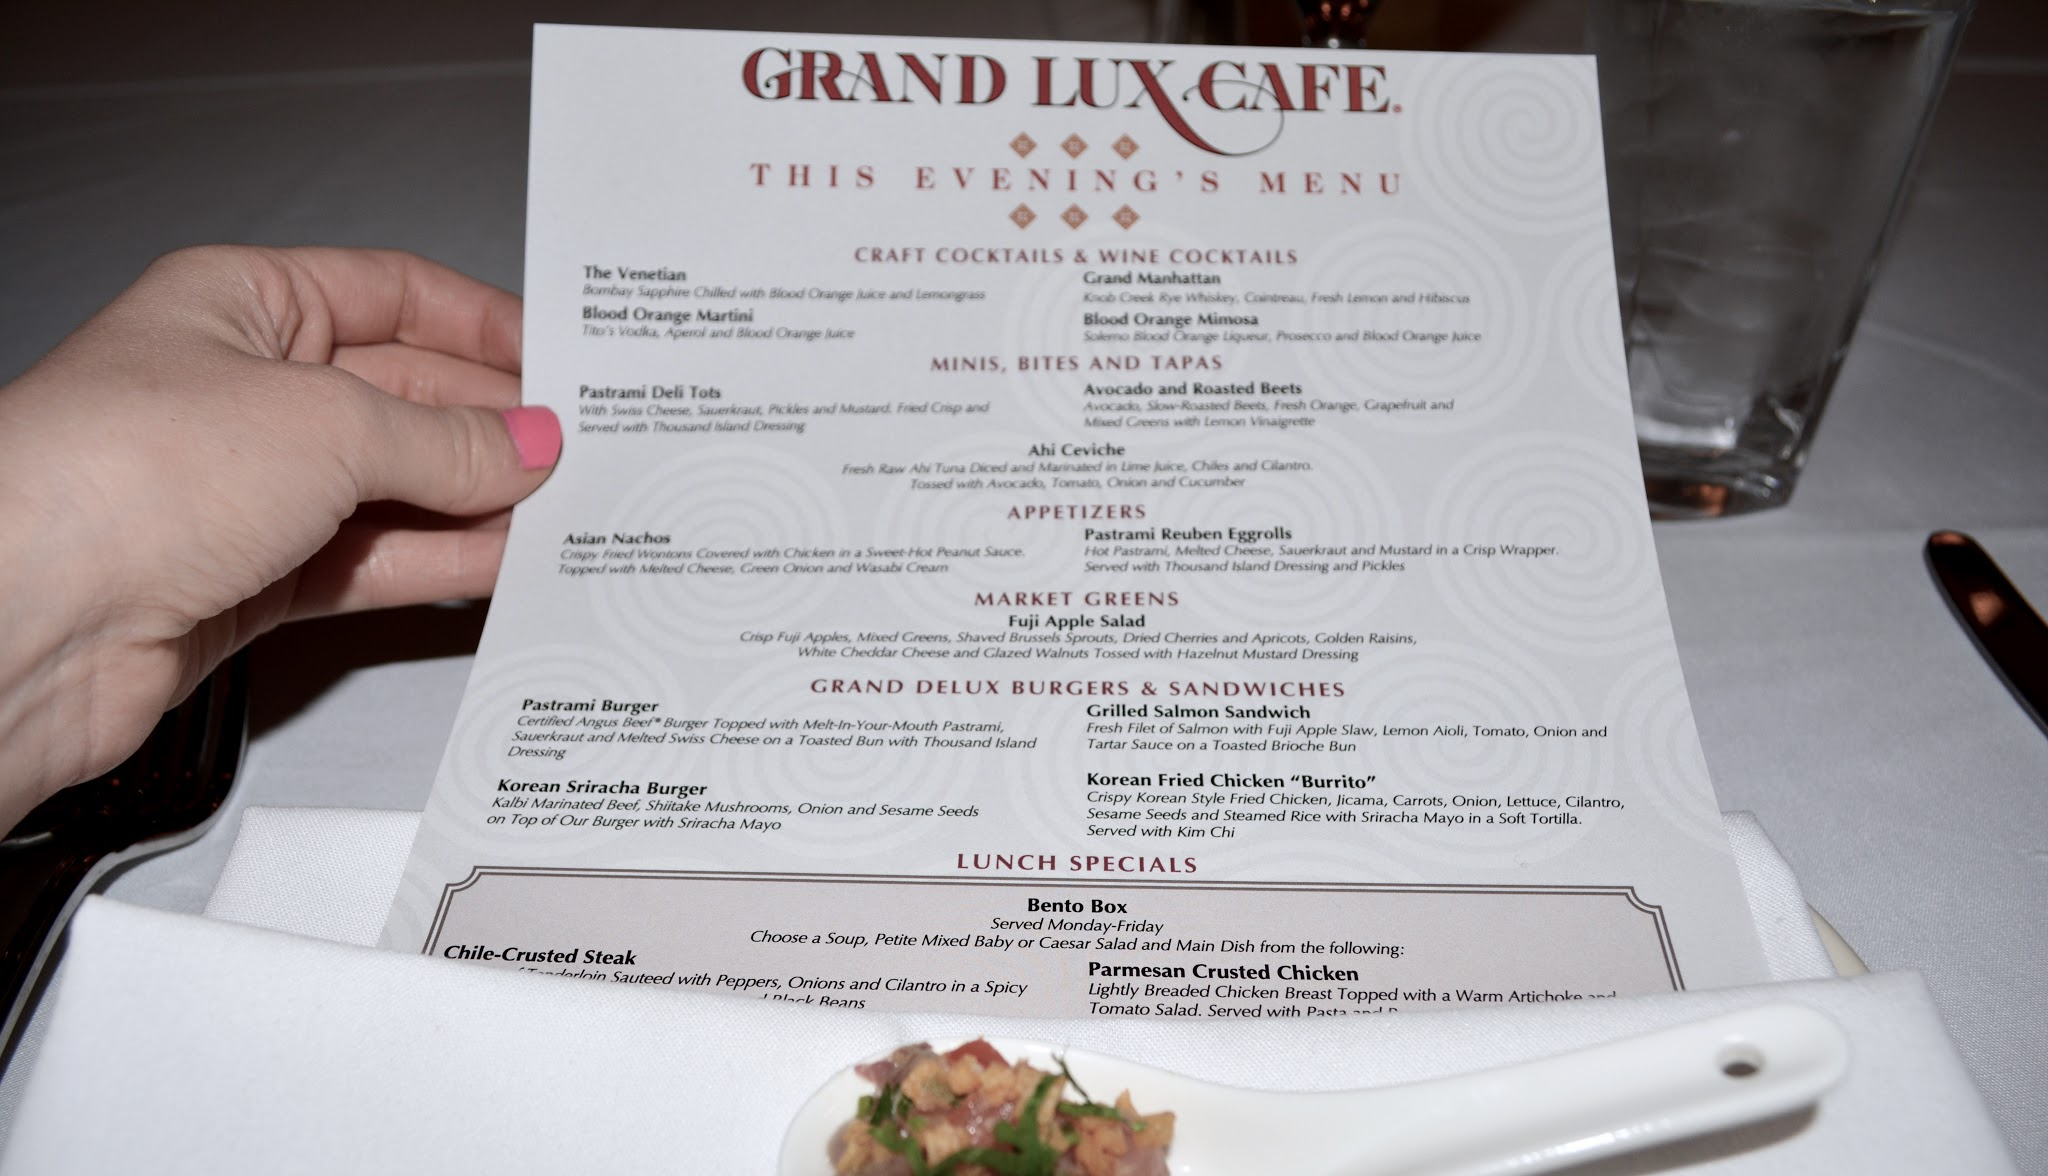 Grand Luxe Cafe's new menu, Grand Lux Cafe